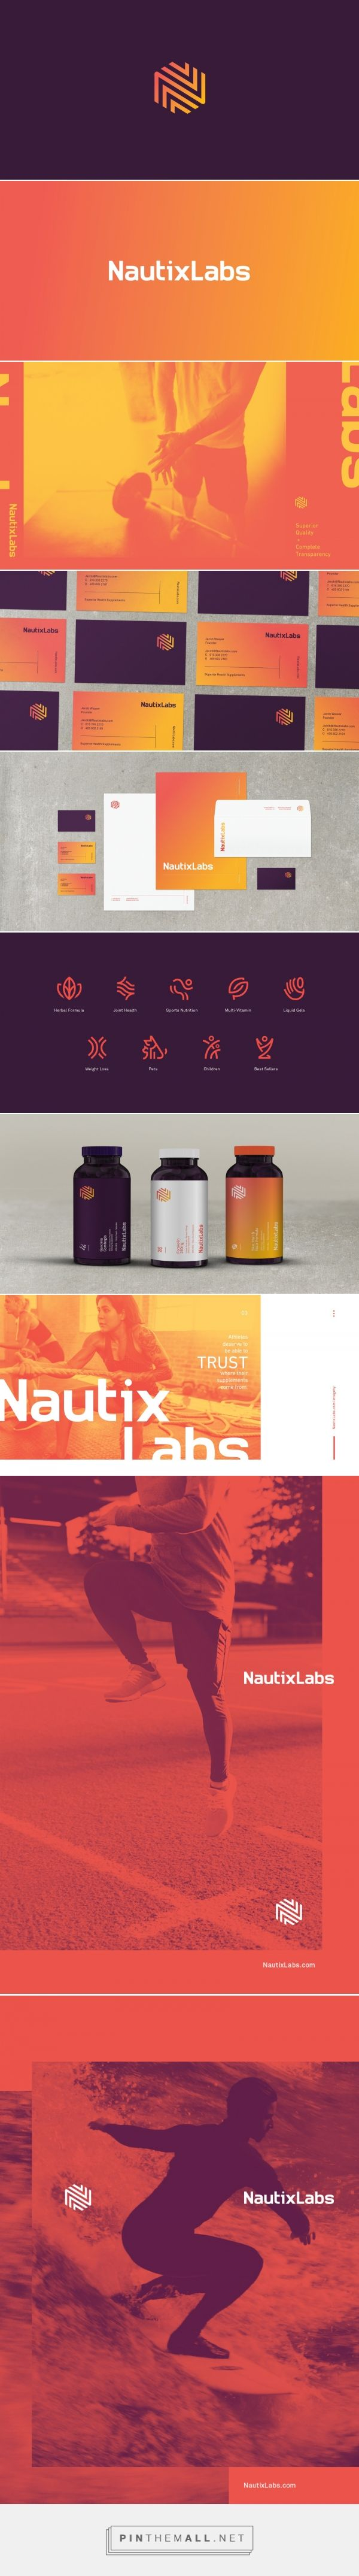 NautixLabs | Mast | Fivestar Branding – Design and Branding Agency & Inspiration Gallery